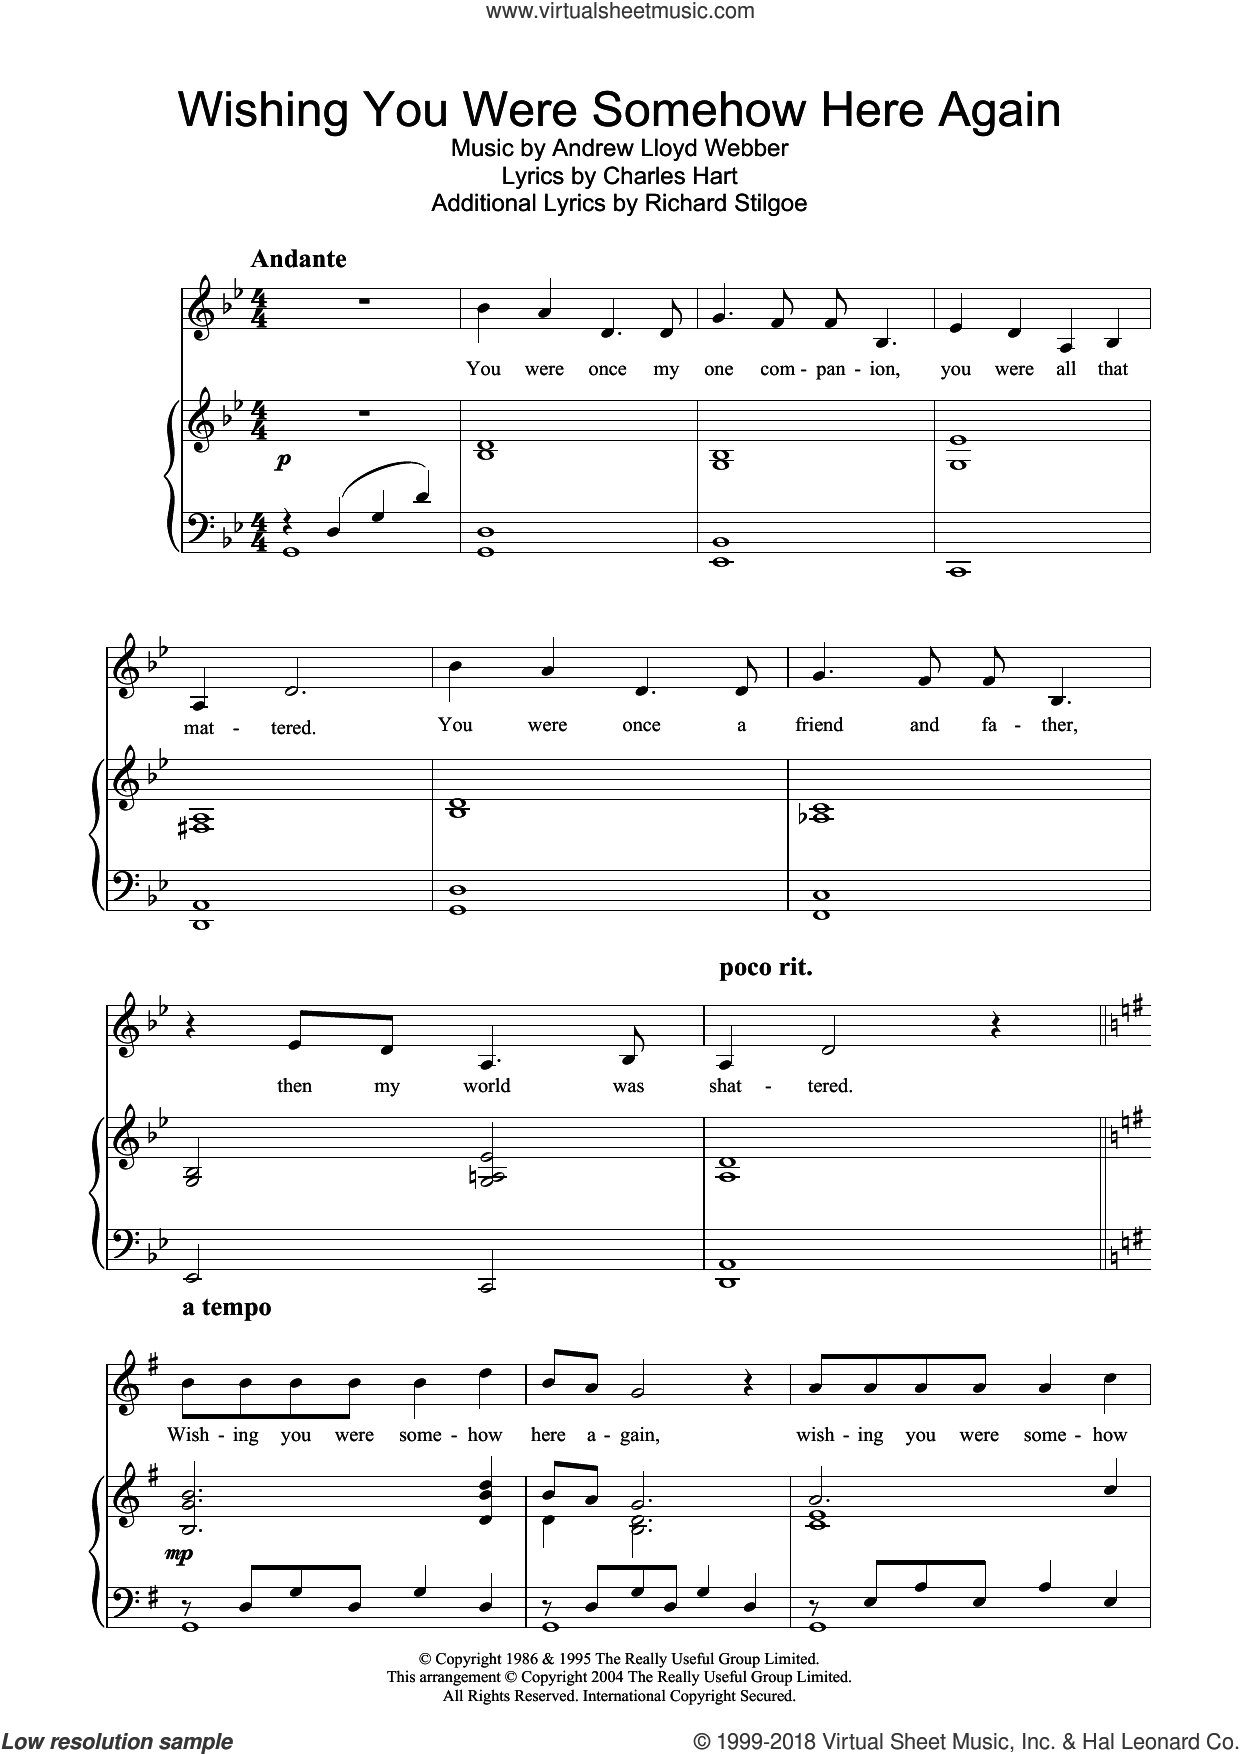 Wishing You Were Somehow Here Again sheet music for voice, piano or guitar by Richard Stilgoe, Hayley Westenra, Andrew Lloyd Webber and Charles Hart. Score Image Preview.